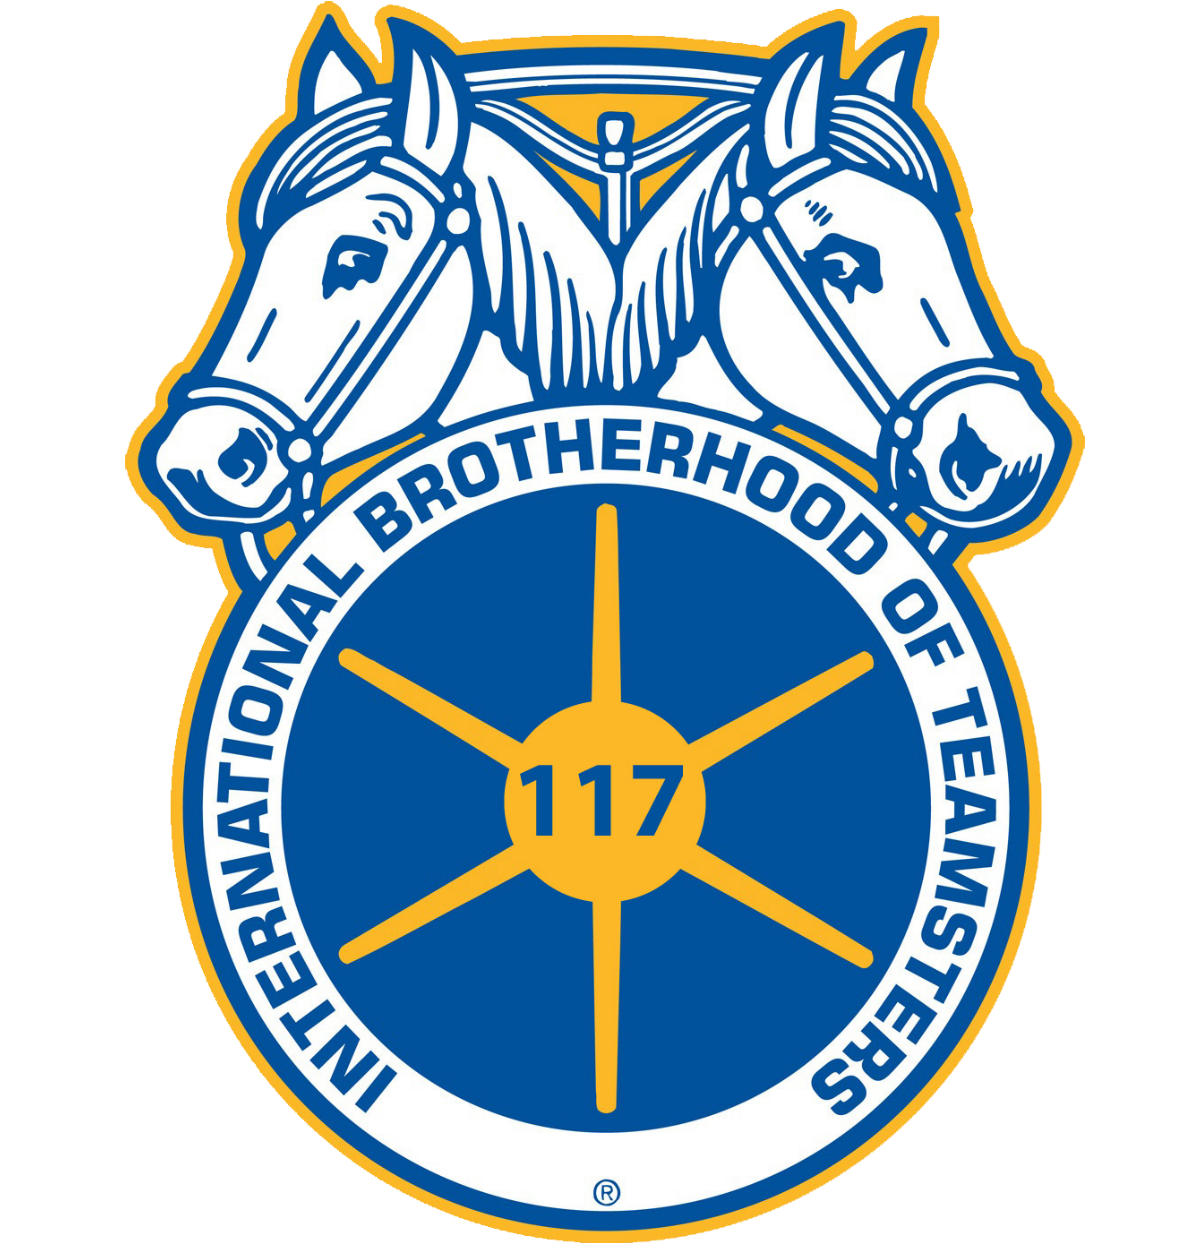 Teamsters Local #117